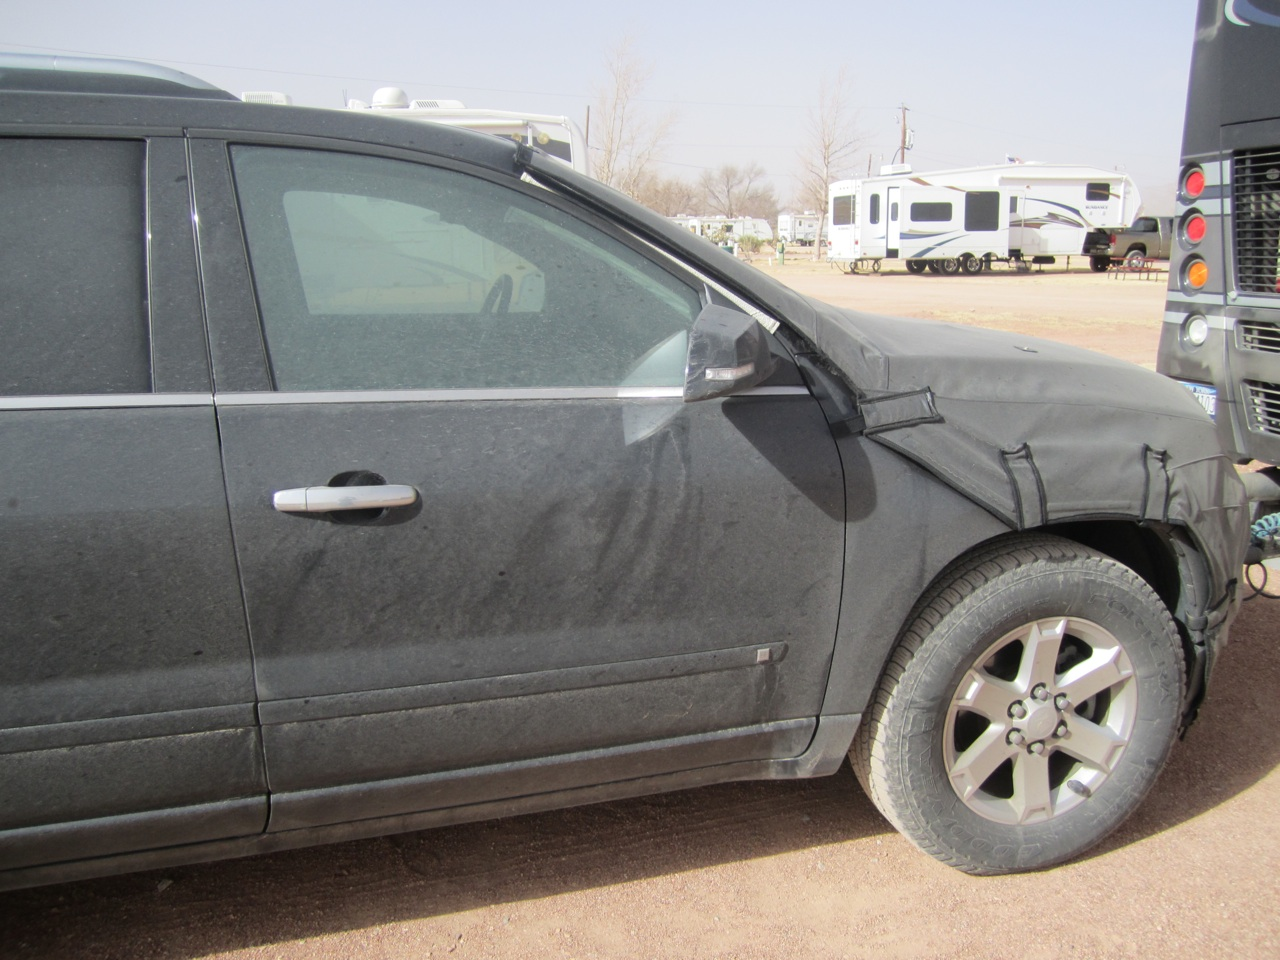 Our Poor Car Caked In Dirt and Dust.